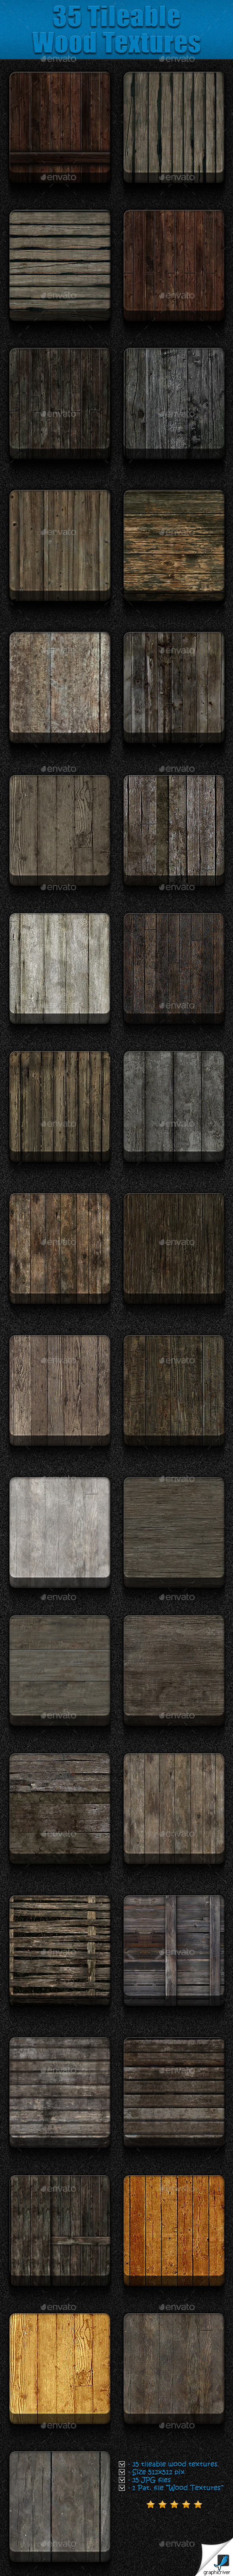 GraphicRiver 35 Tileable Wood Textures 9014696